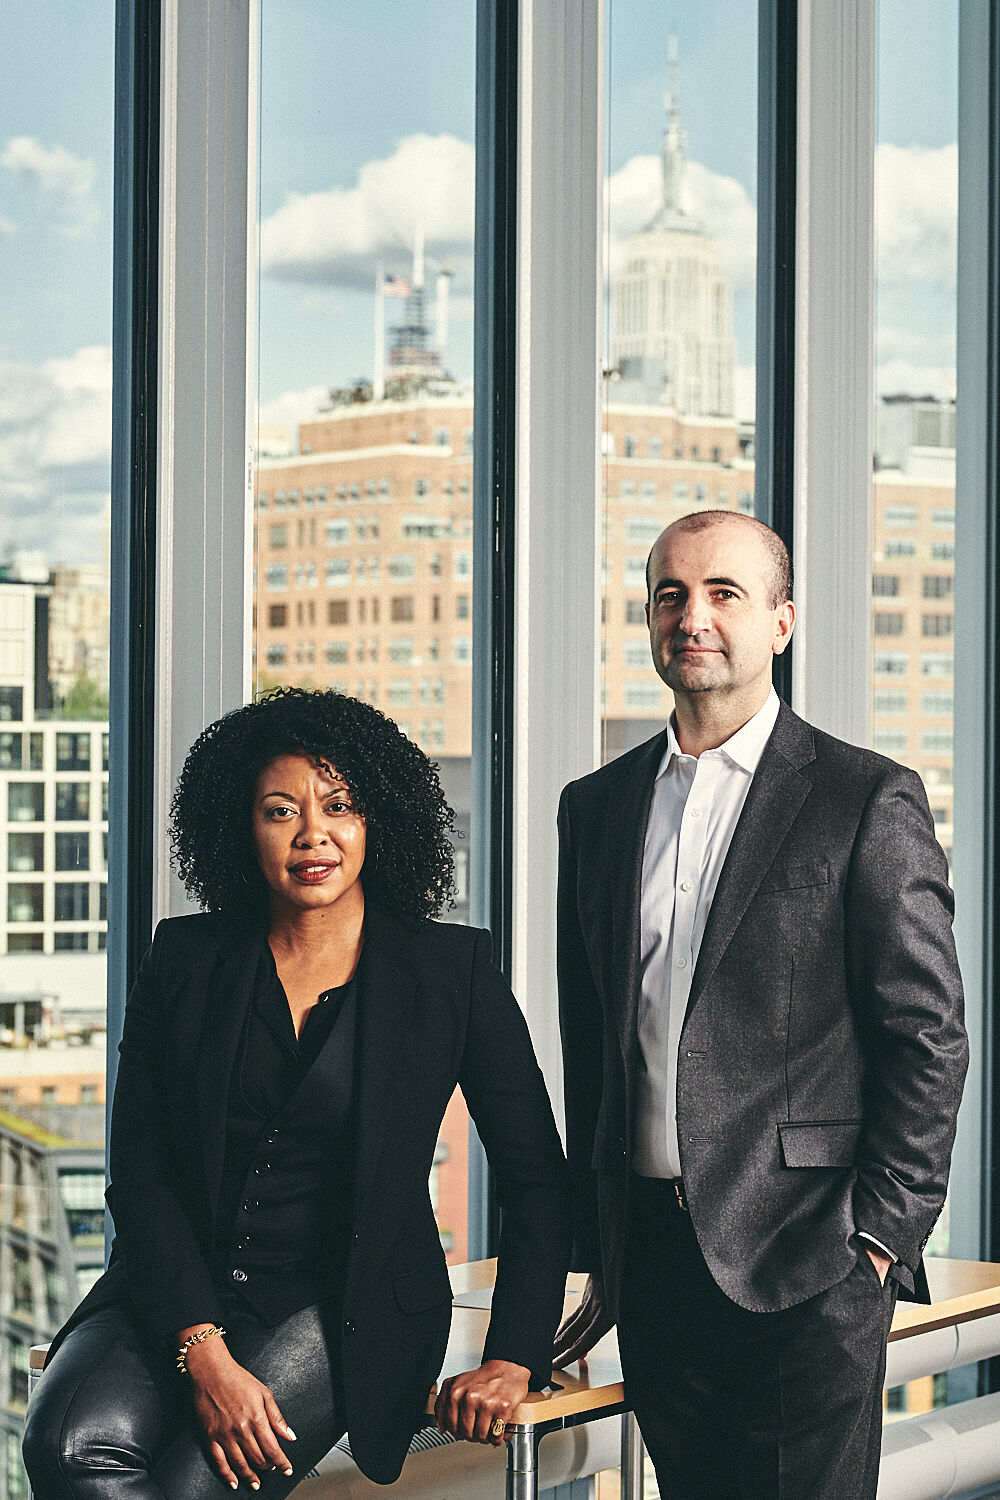 Portrait of Adrienne Edwards (left) and David Breslin (right).